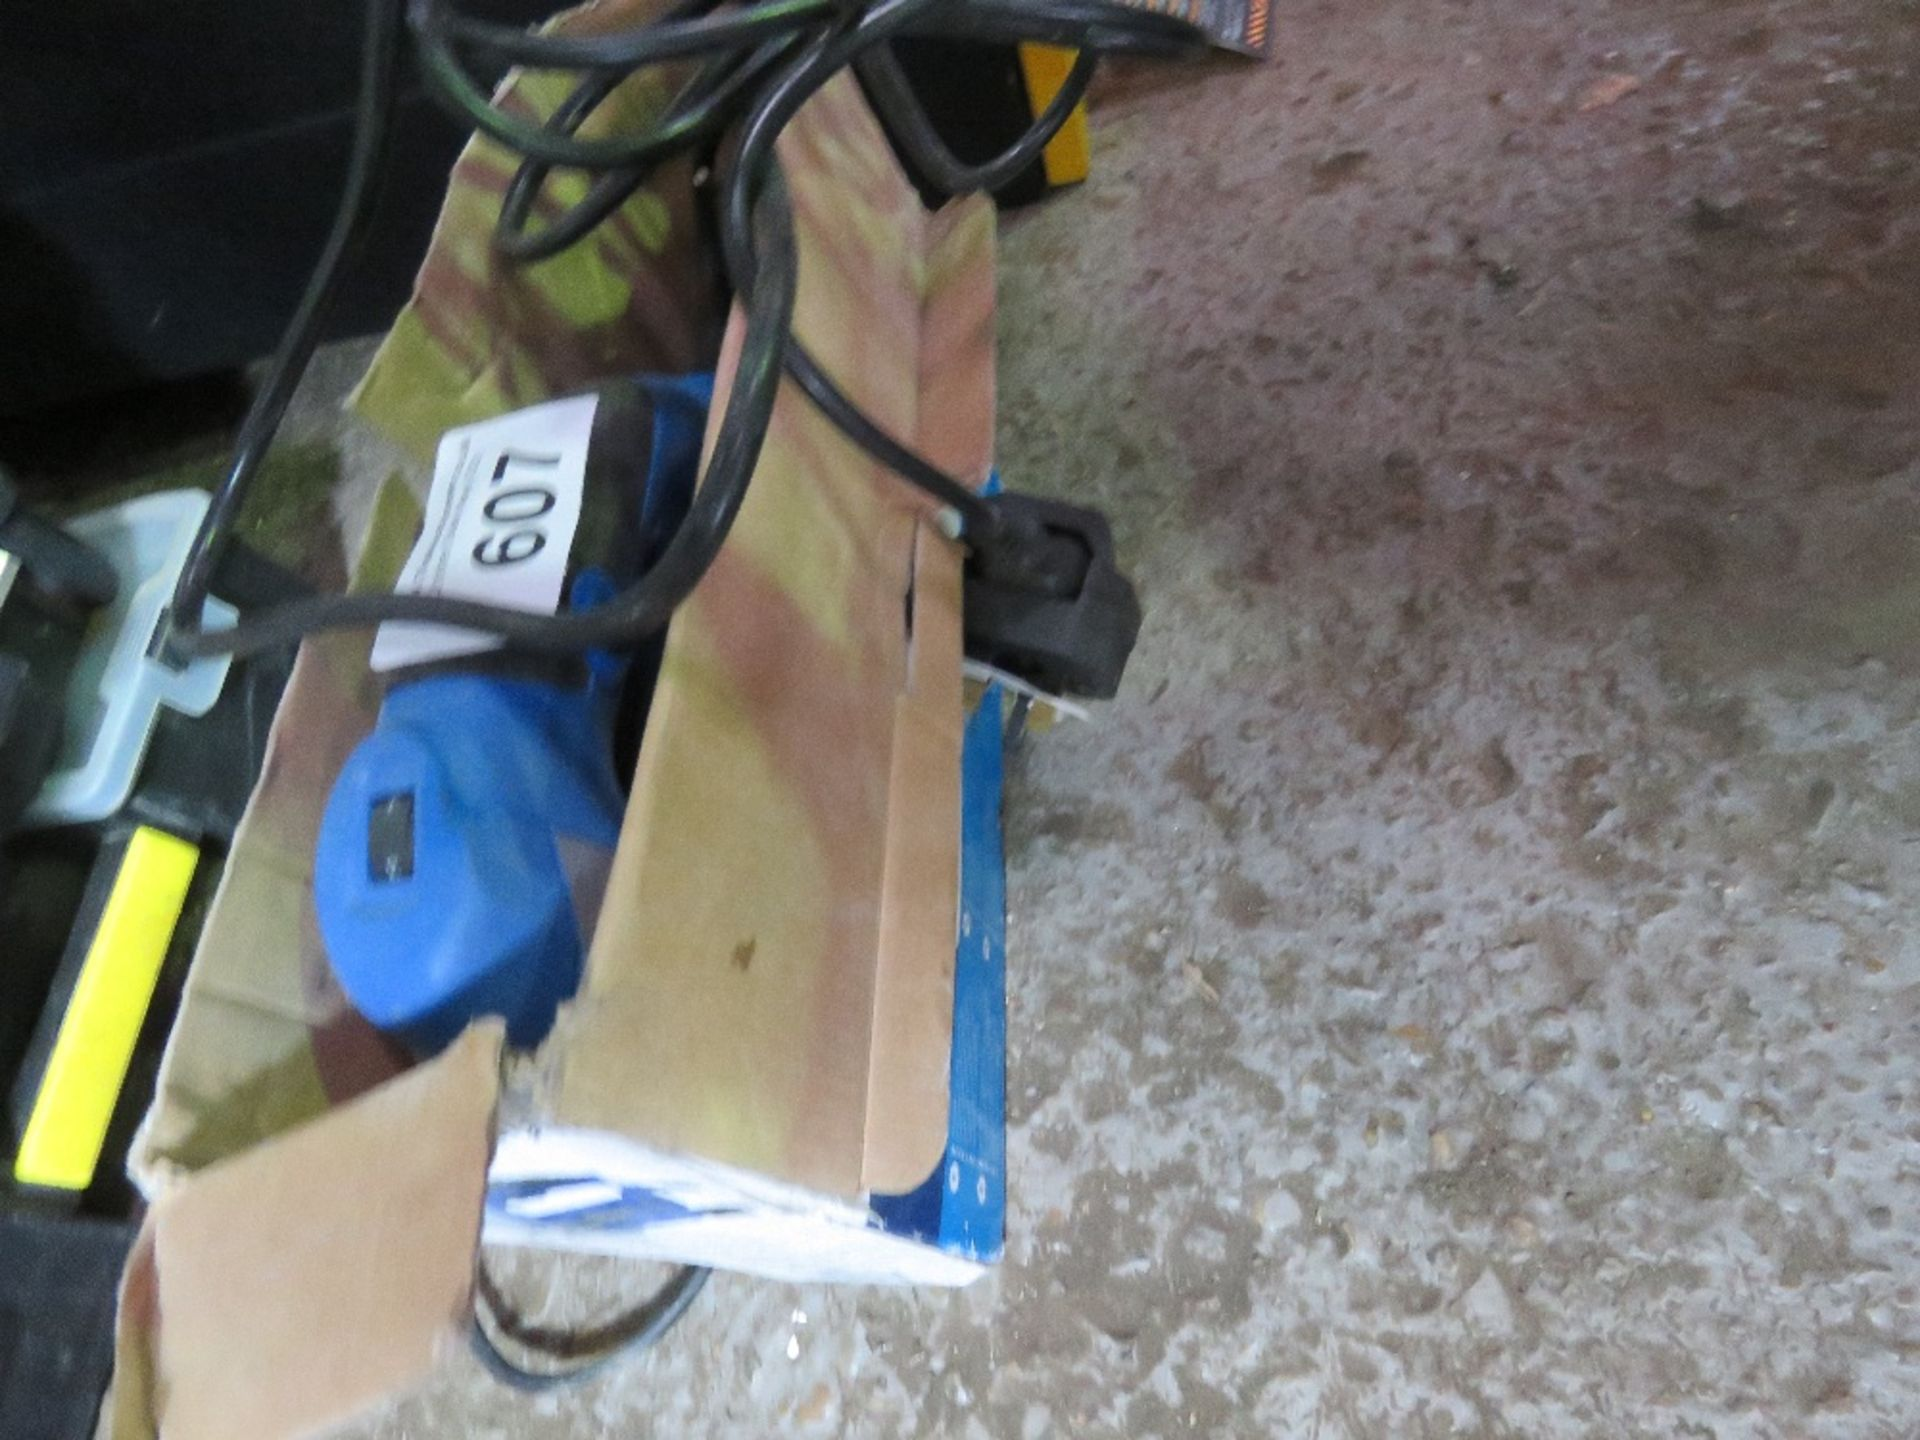 PALM SANDER PLUS A JIGSAW. UNTESTED, CONDITION UNKNOWN. - Image 2 of 2